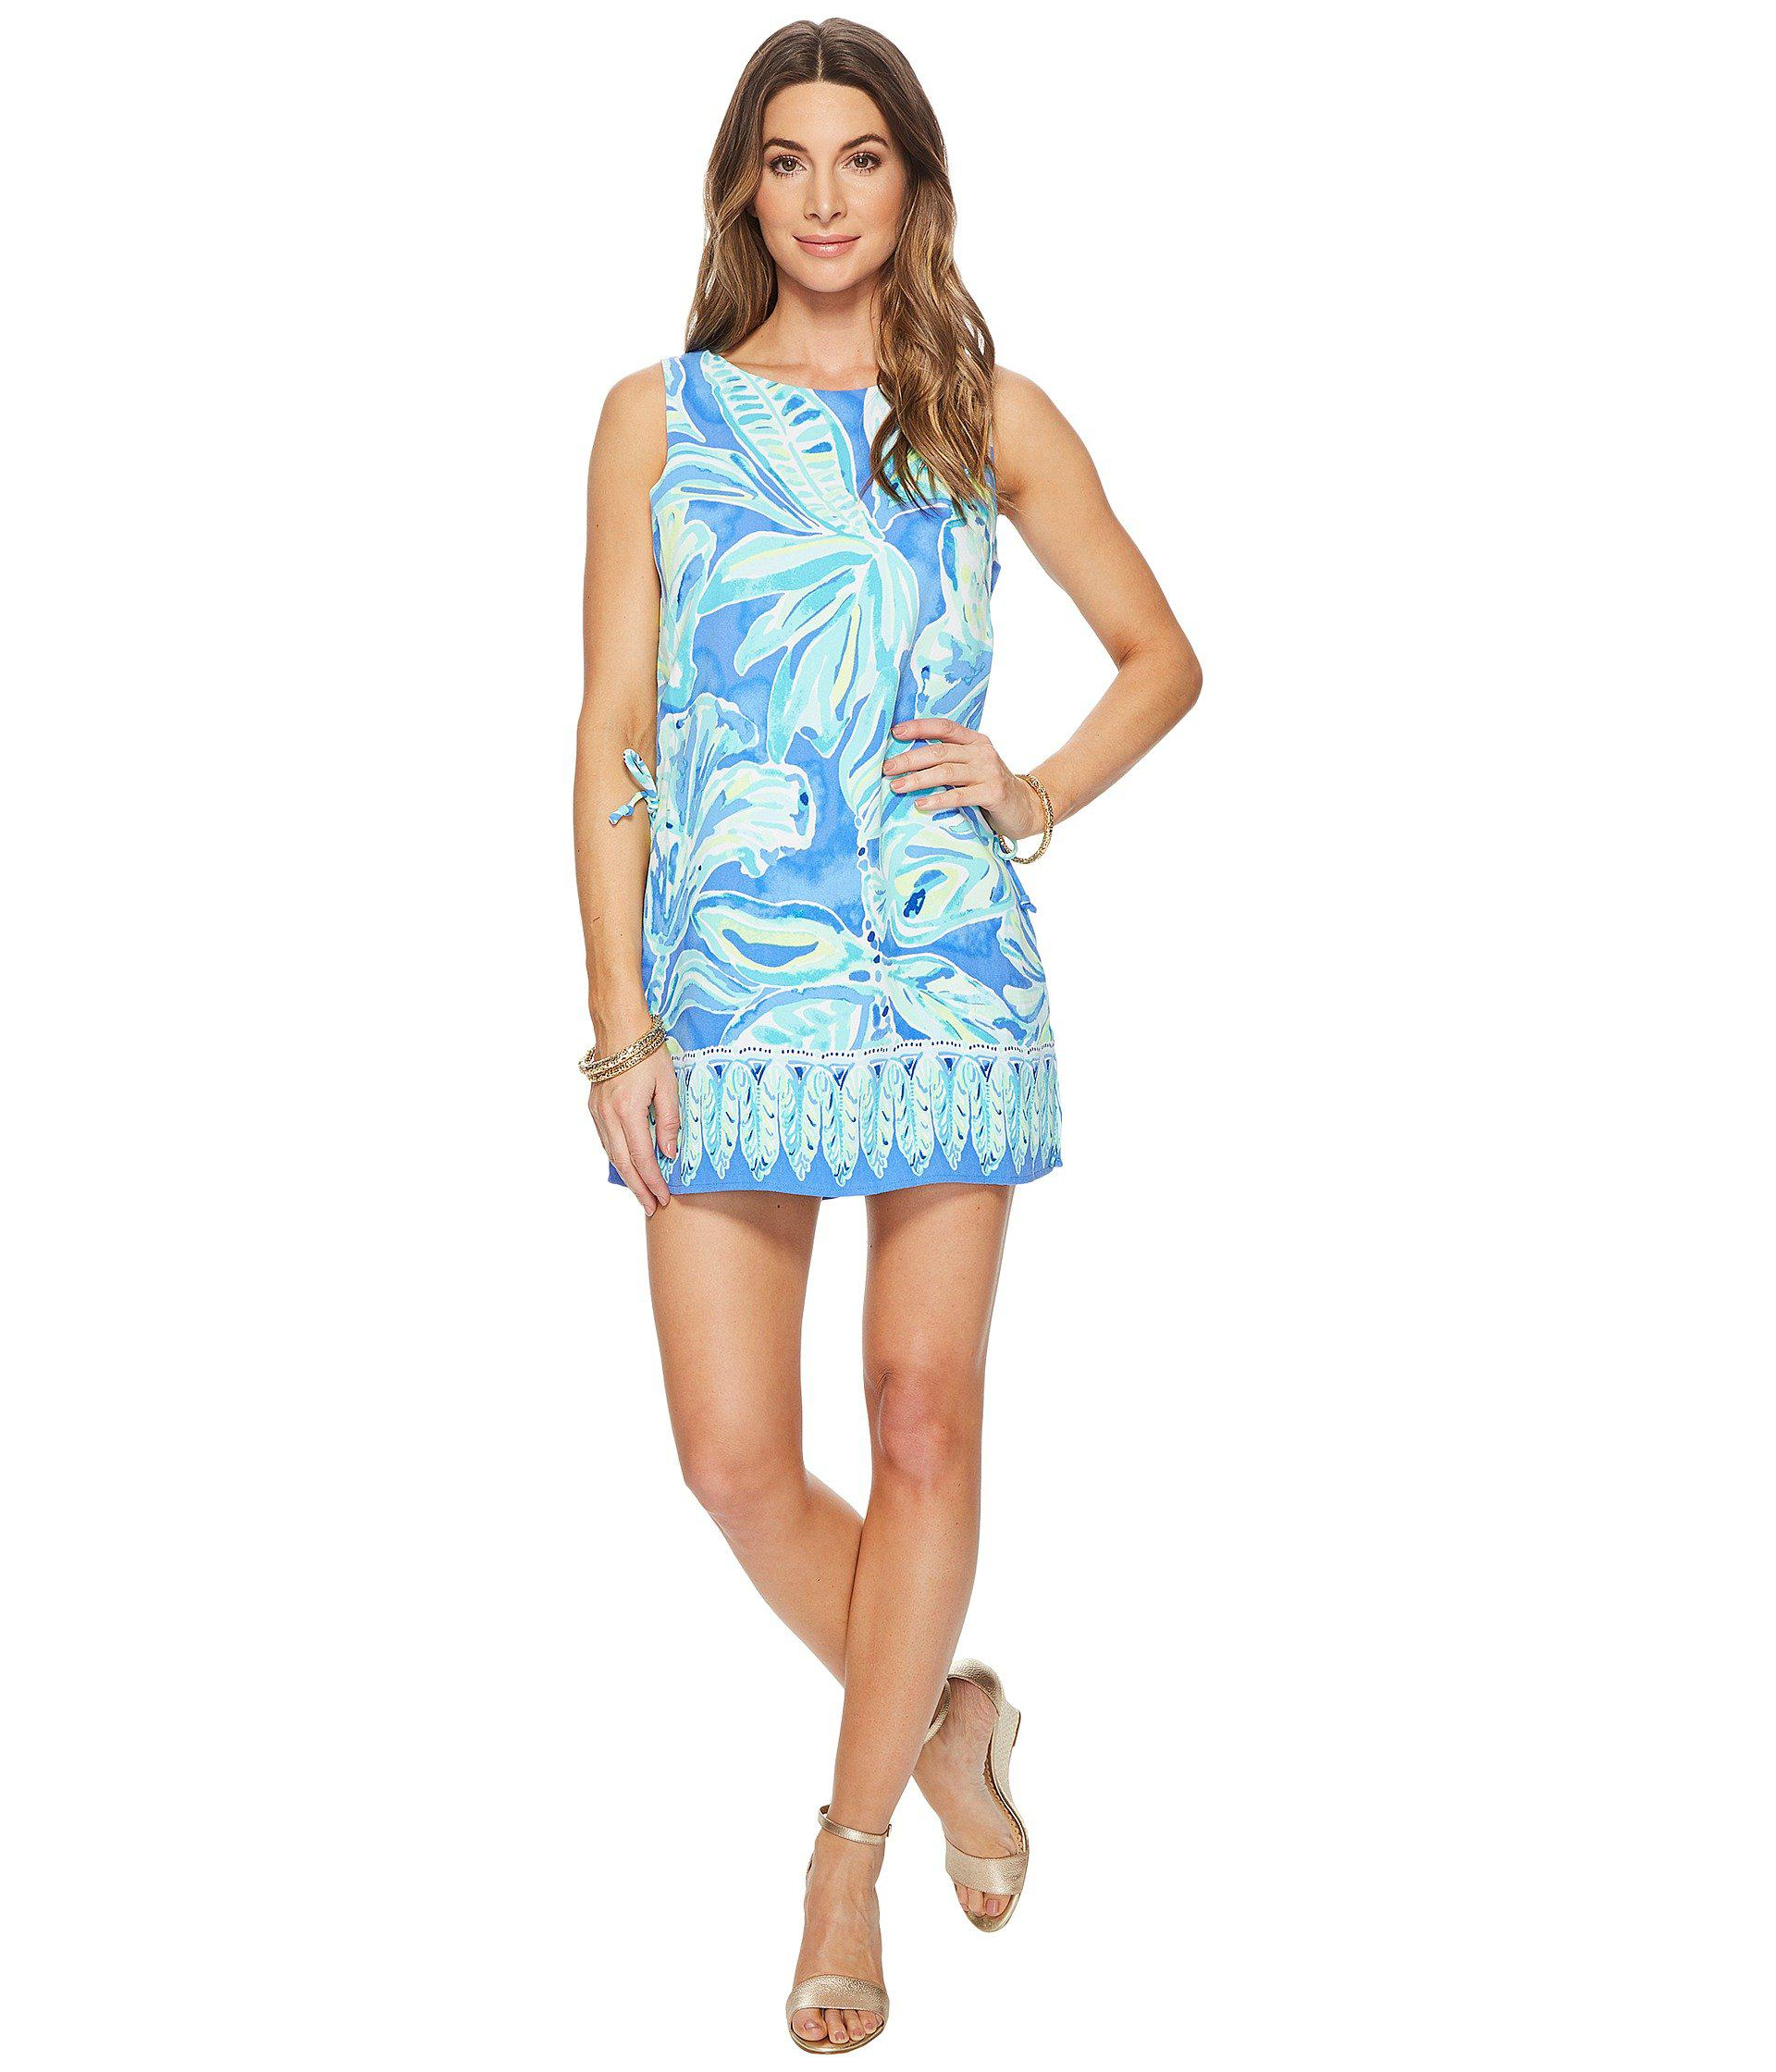 fe0ad63bee5d Lyst - Lilly Pulitzer Donna Romper in Blue